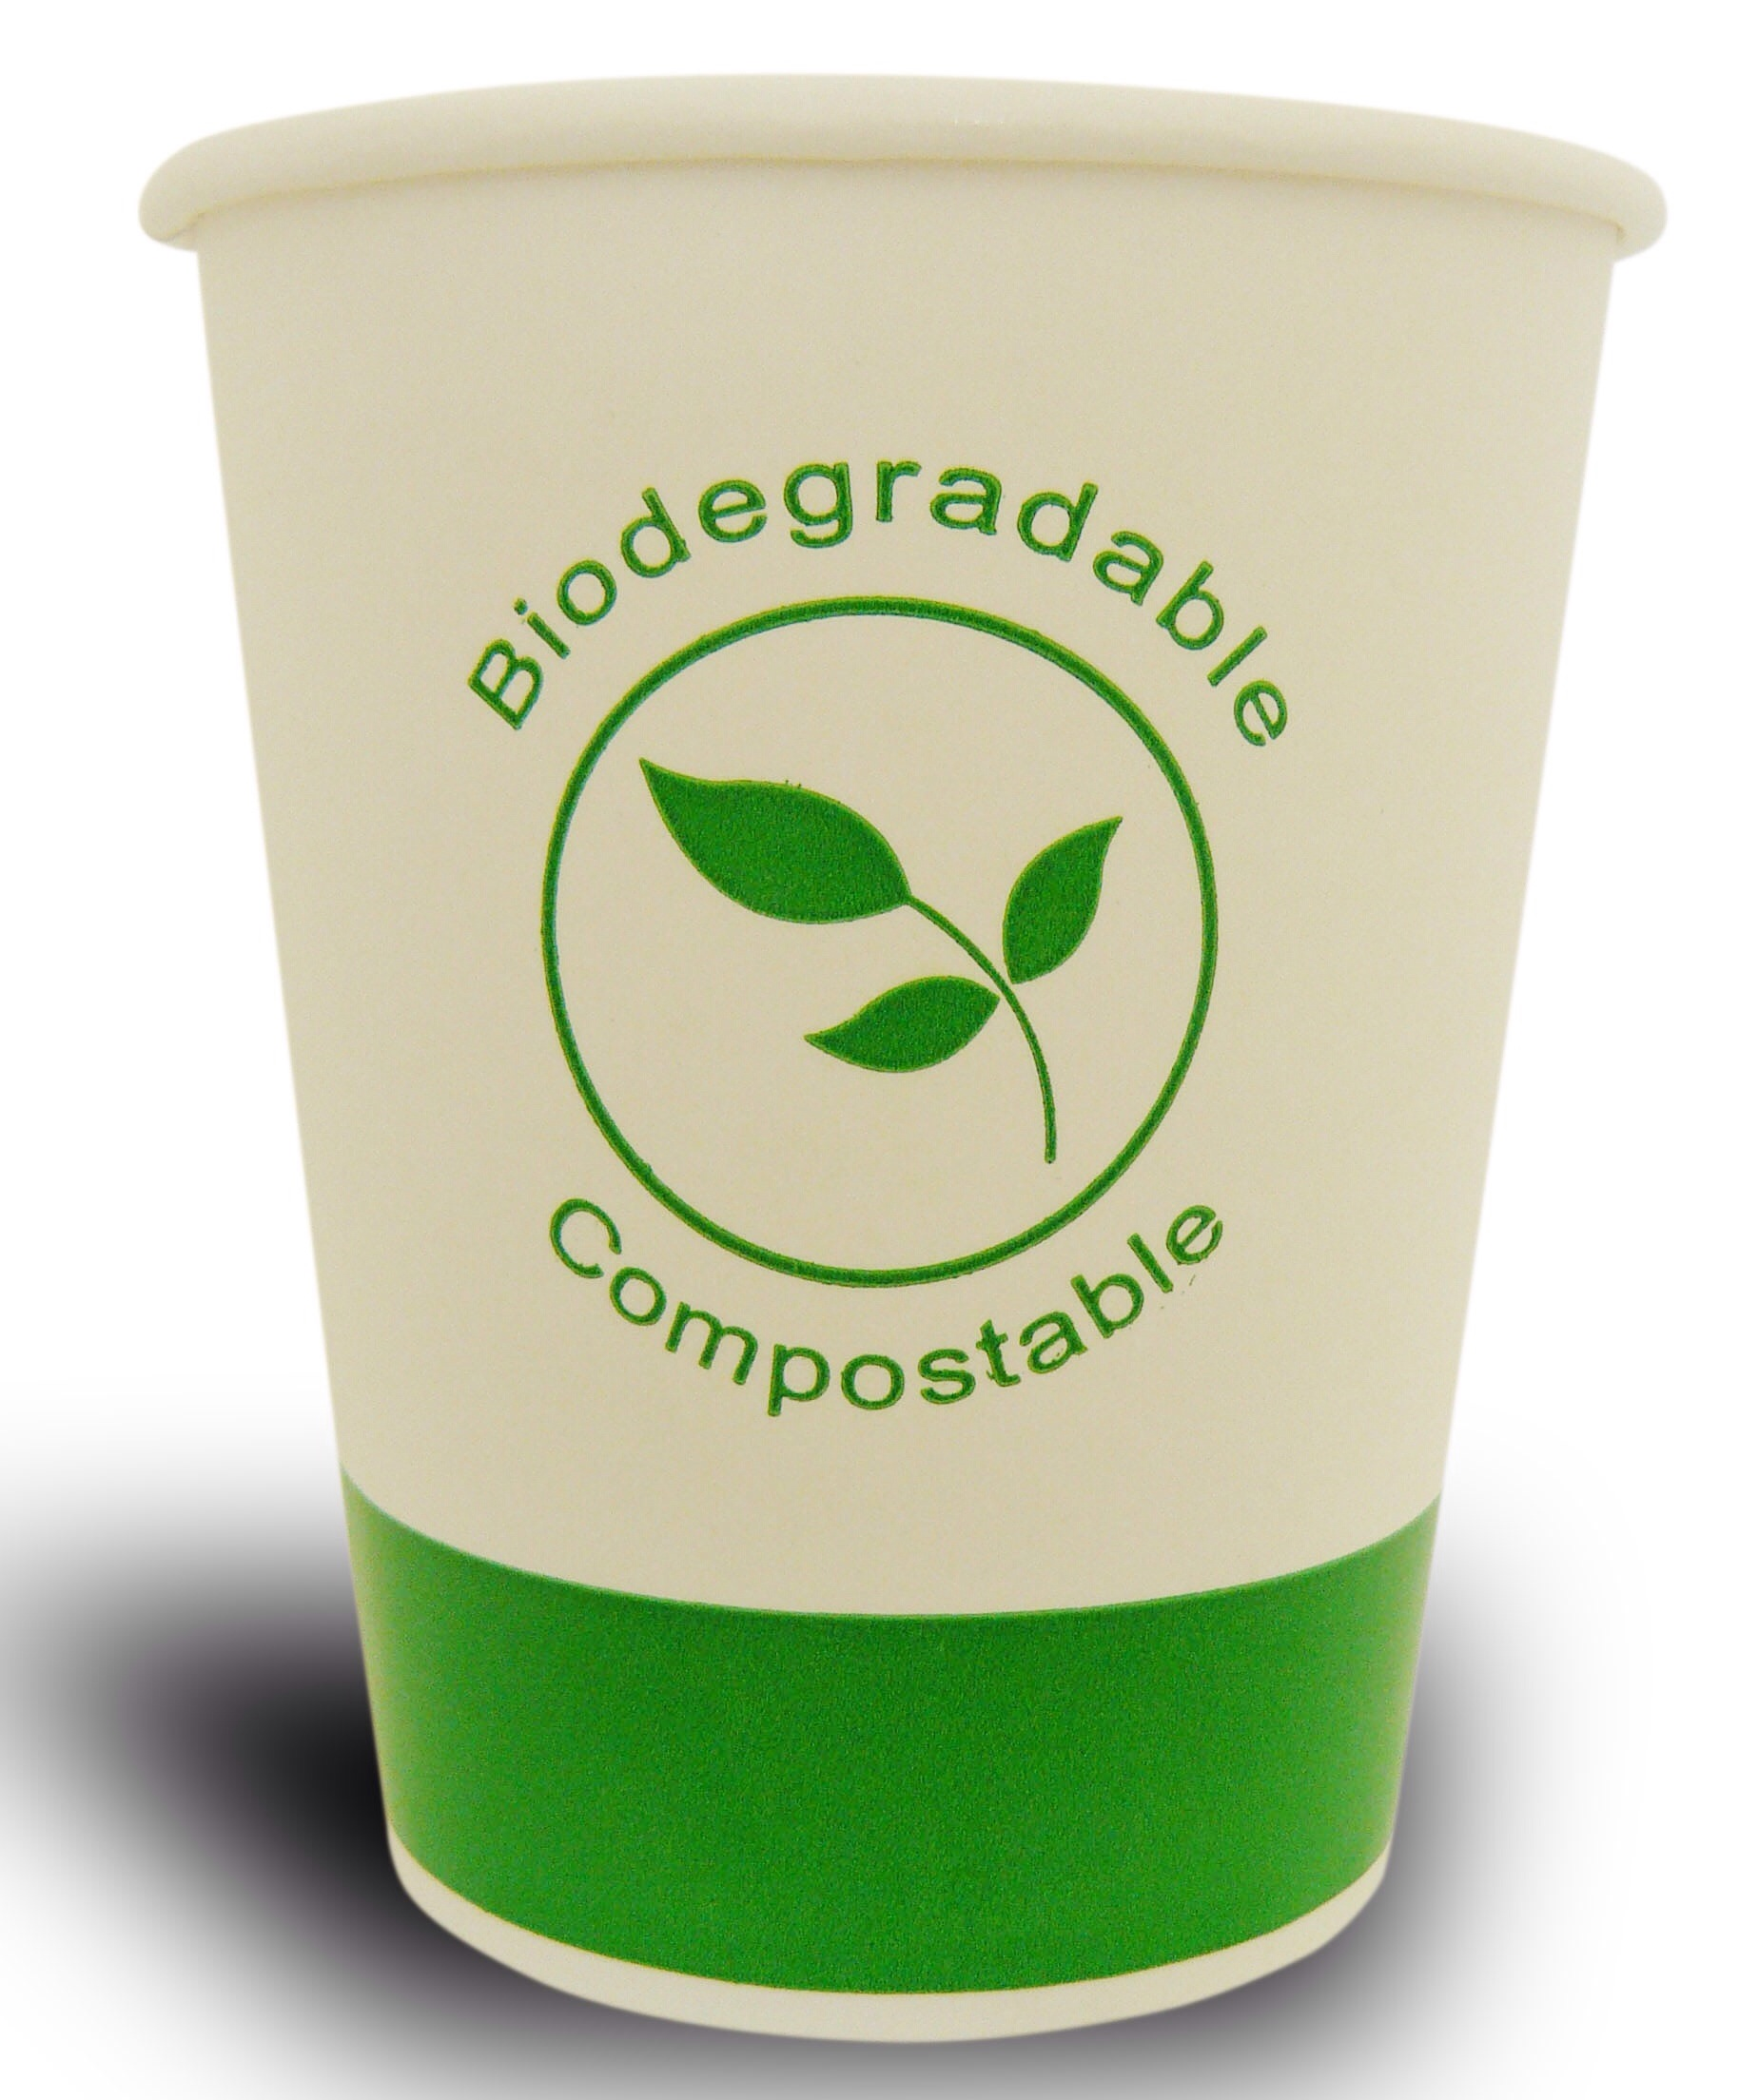 Adopt a Grandparent, they're Biodegradable